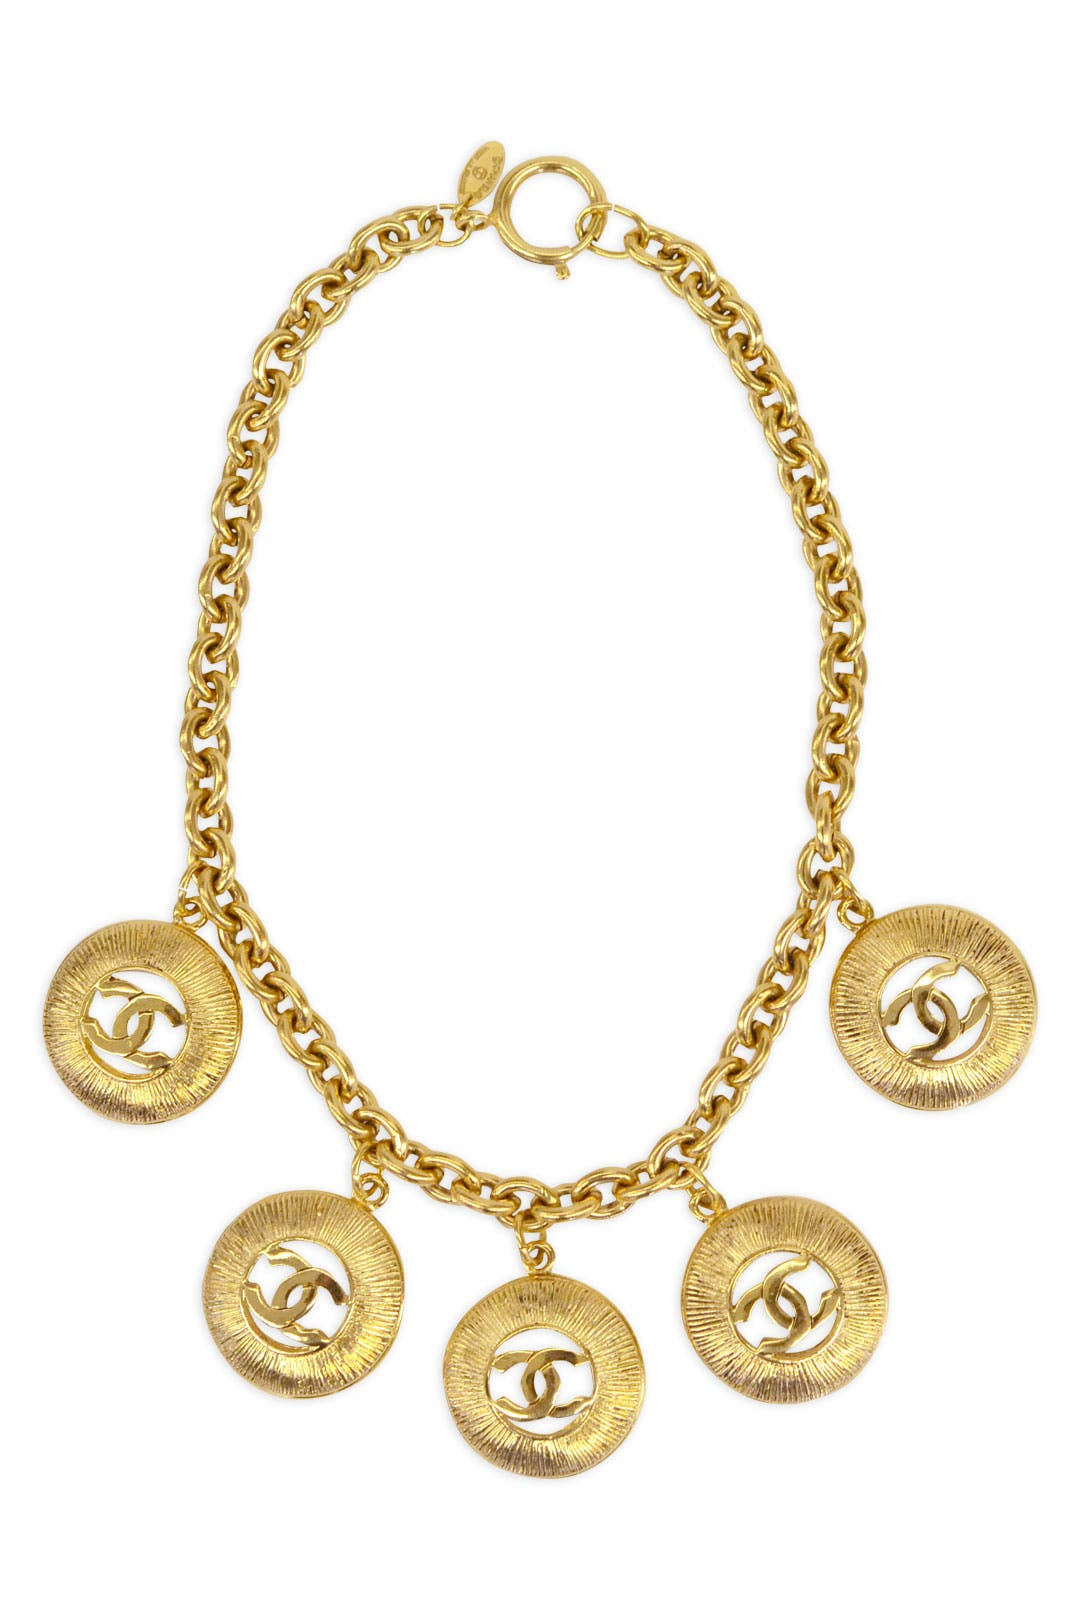 Vintage Chanel Circle Link Necklace by WGACA Vintage